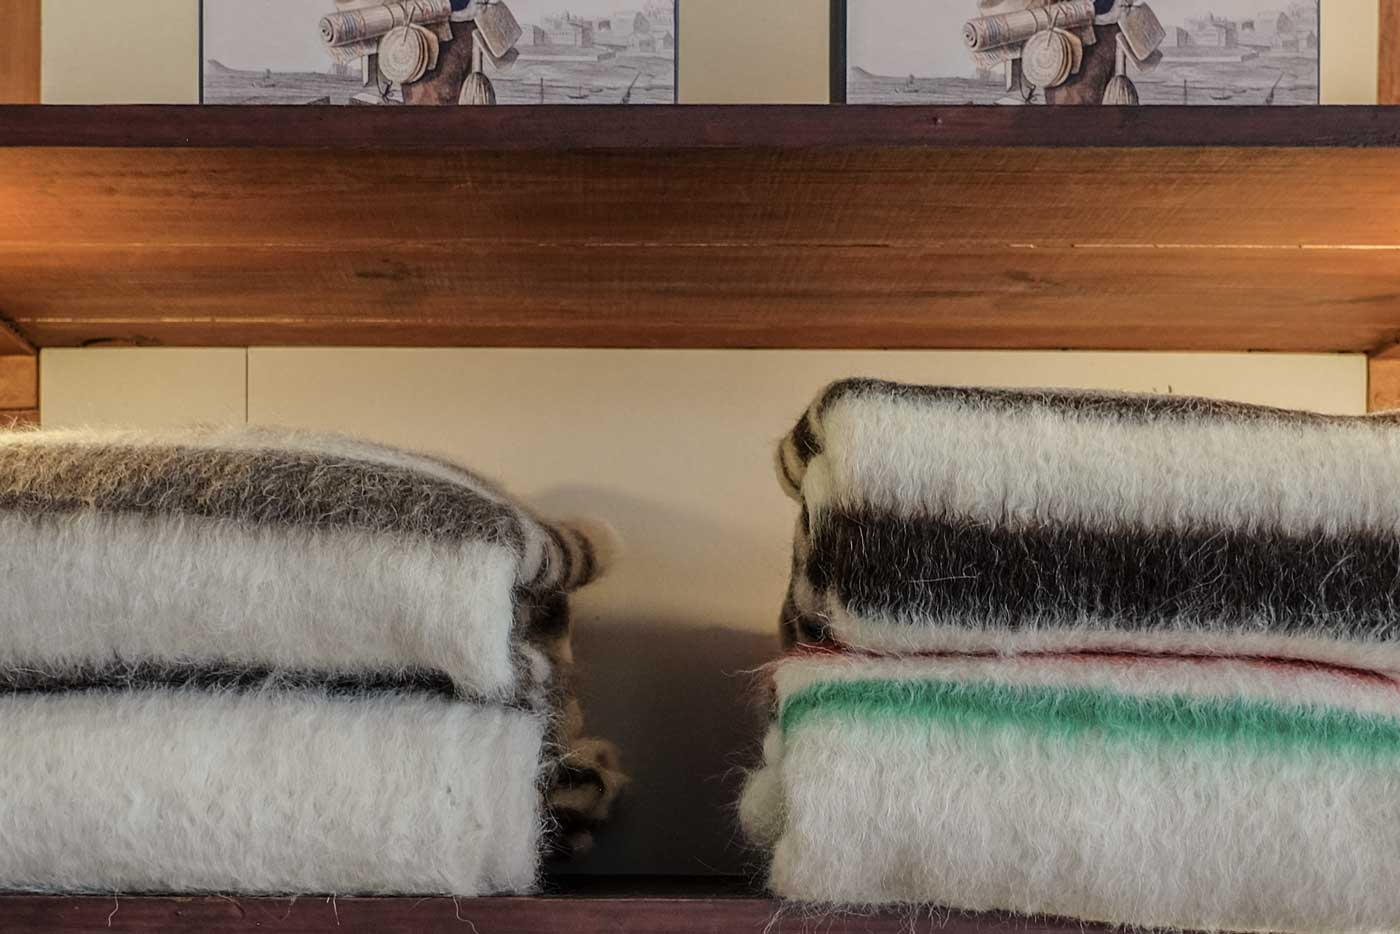 A stack of Portuguese brushed wool blankets (Cobertor de Papa) on a shelf